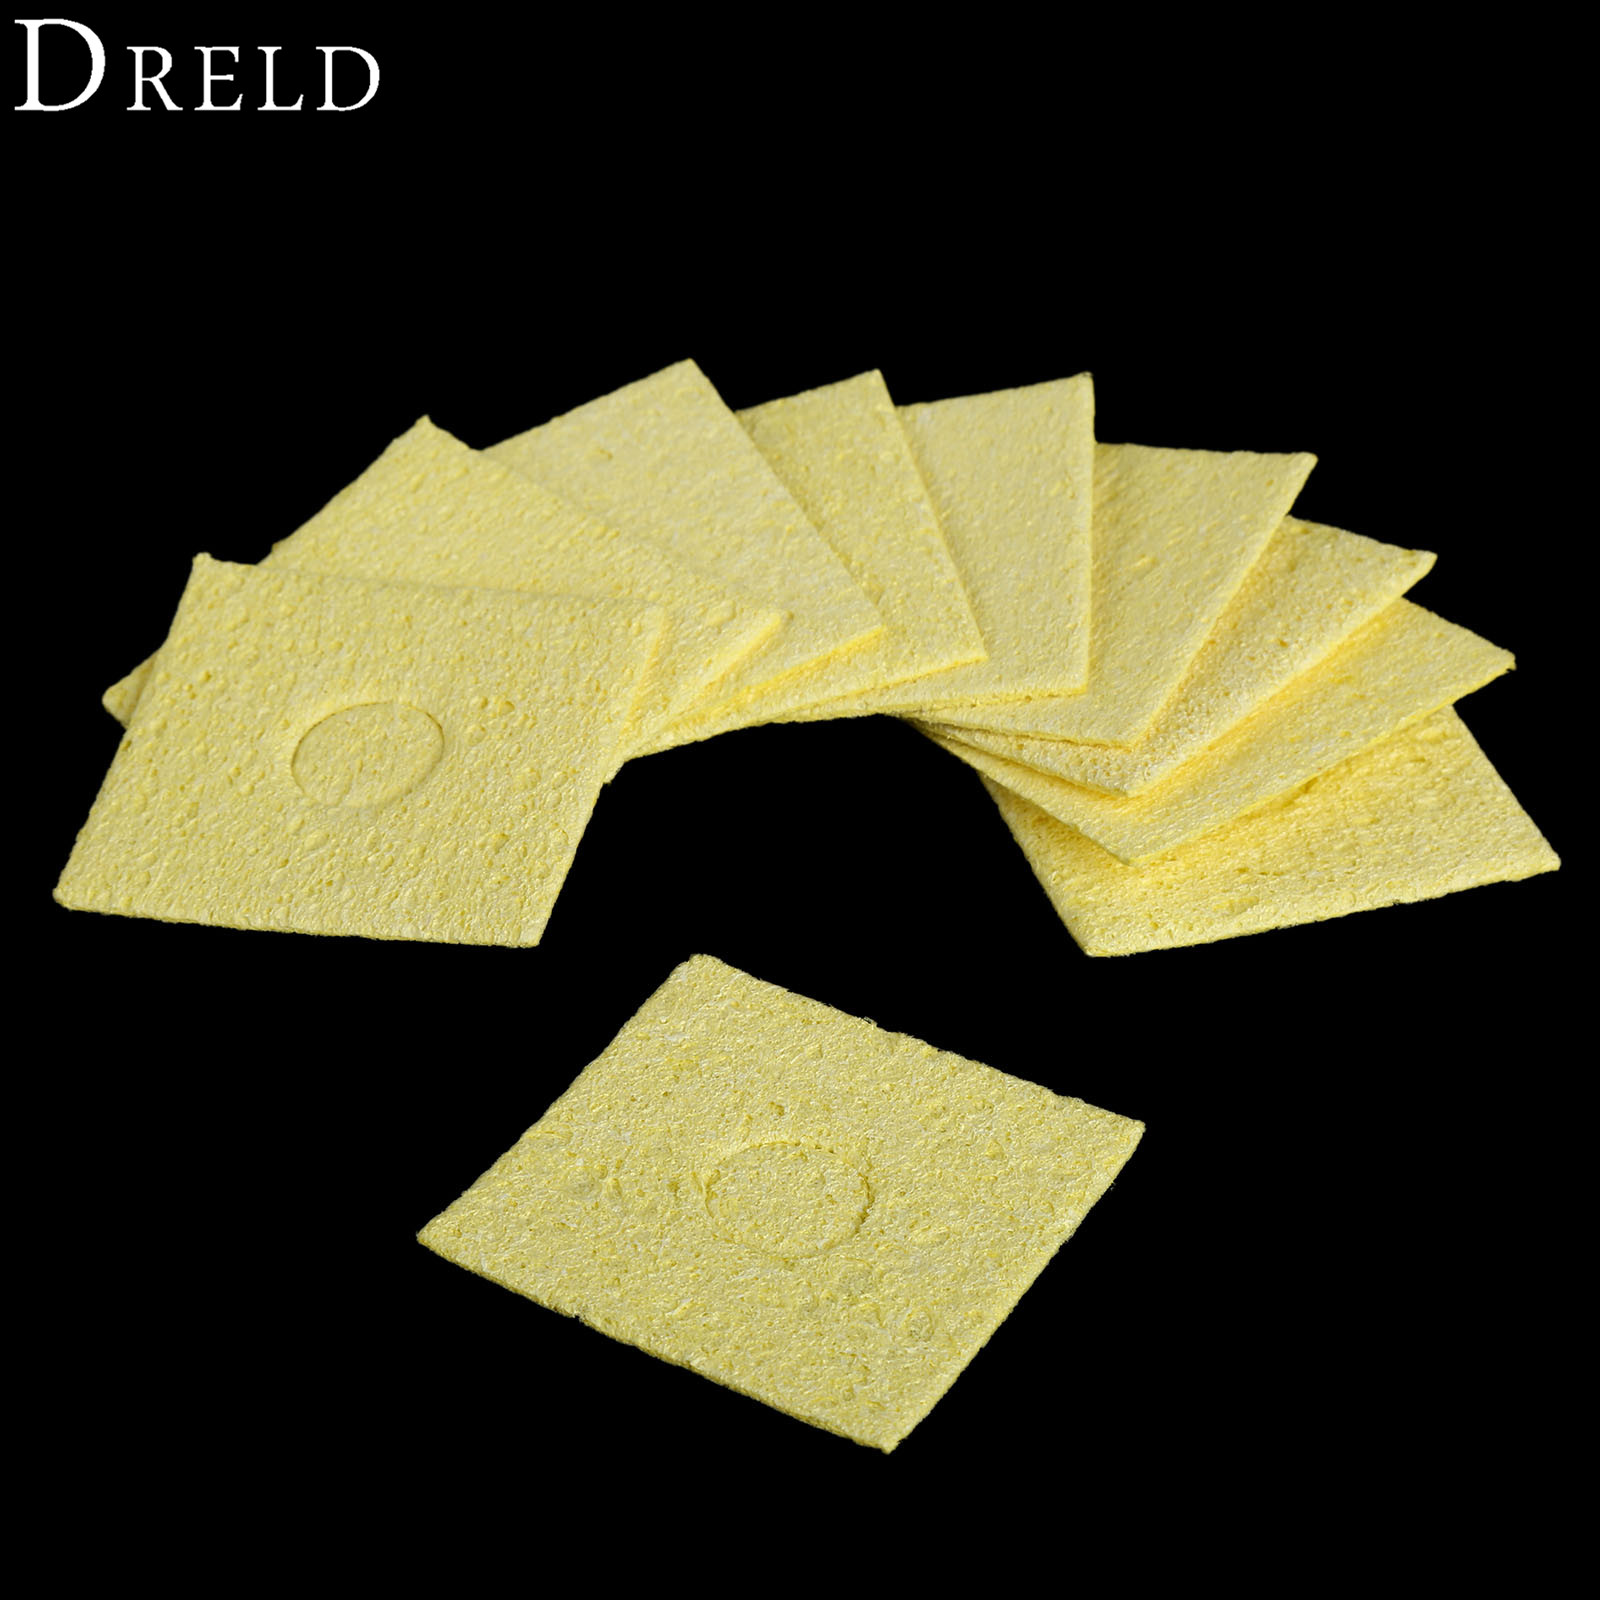 DRELD 10pcs Electric Soldering Iron Solder Tip Welding Cleaning Sponge Yellow High Temperature Enduring Clean Tools 55x55x2mm